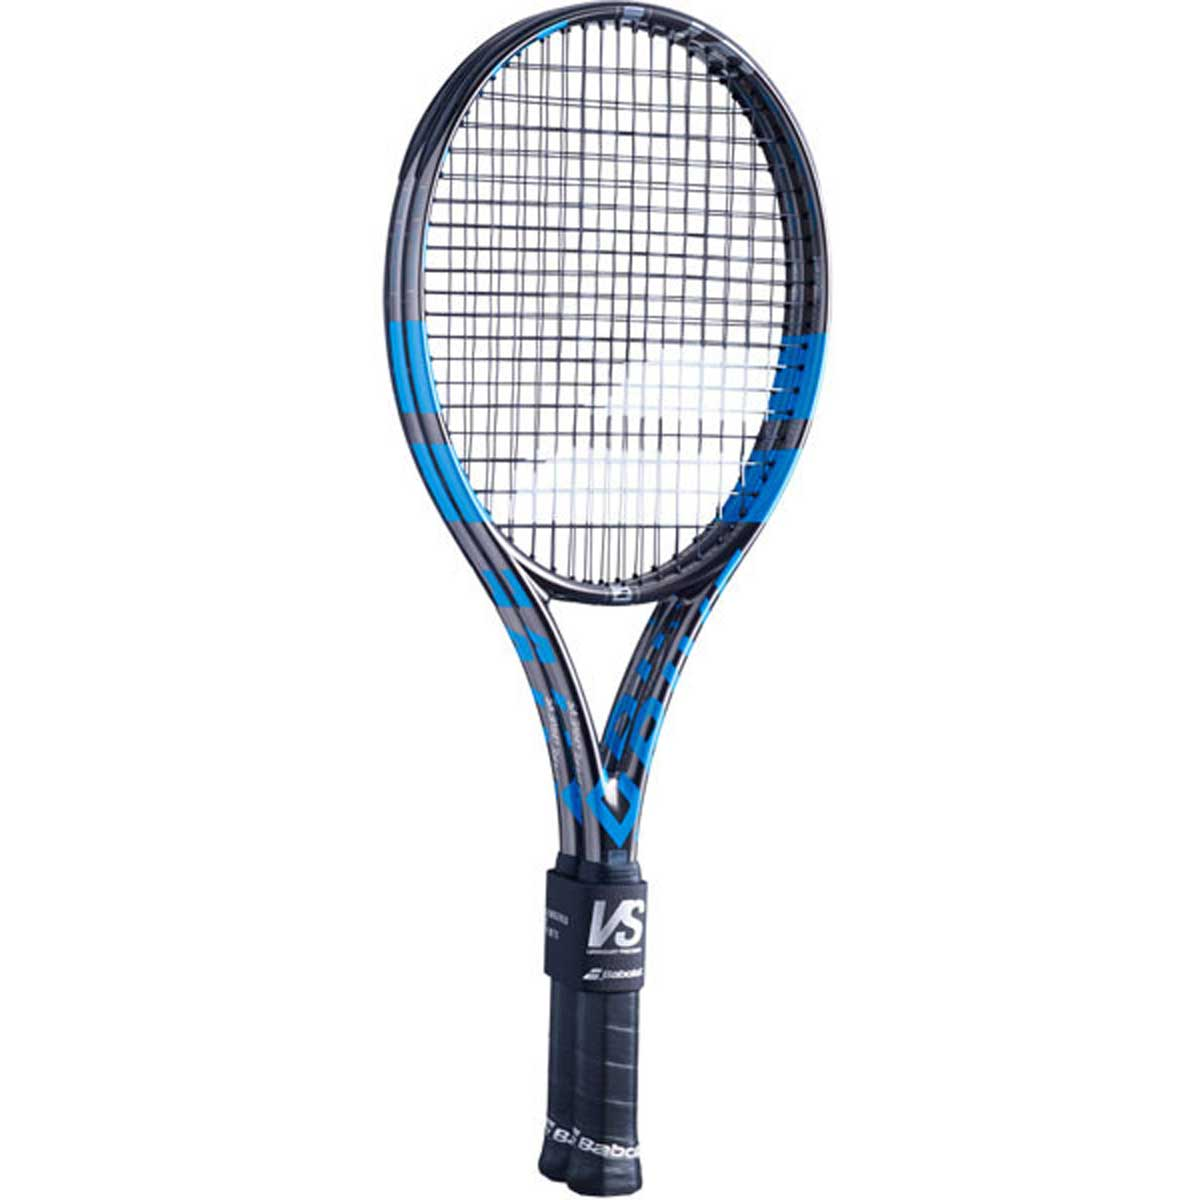 c7da5ba8ba3 Buy Babolat Pure Drive VS Tennis Racquet (Pair) Online at Lowest Price in  India